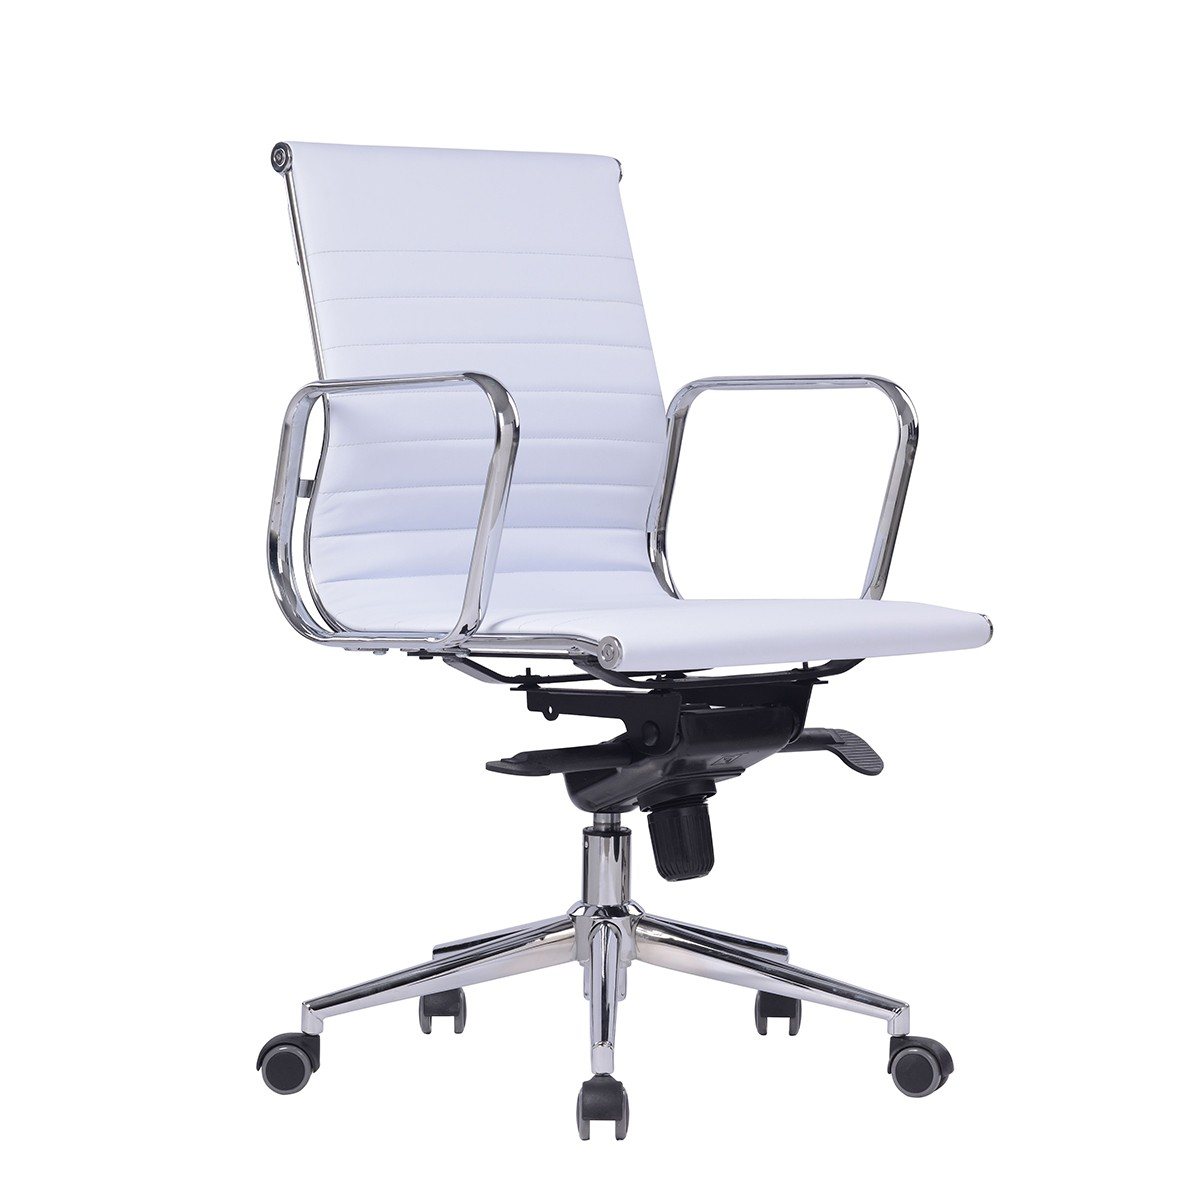 Office Armchair ARKANSAS, Rotatable, Similpiel White